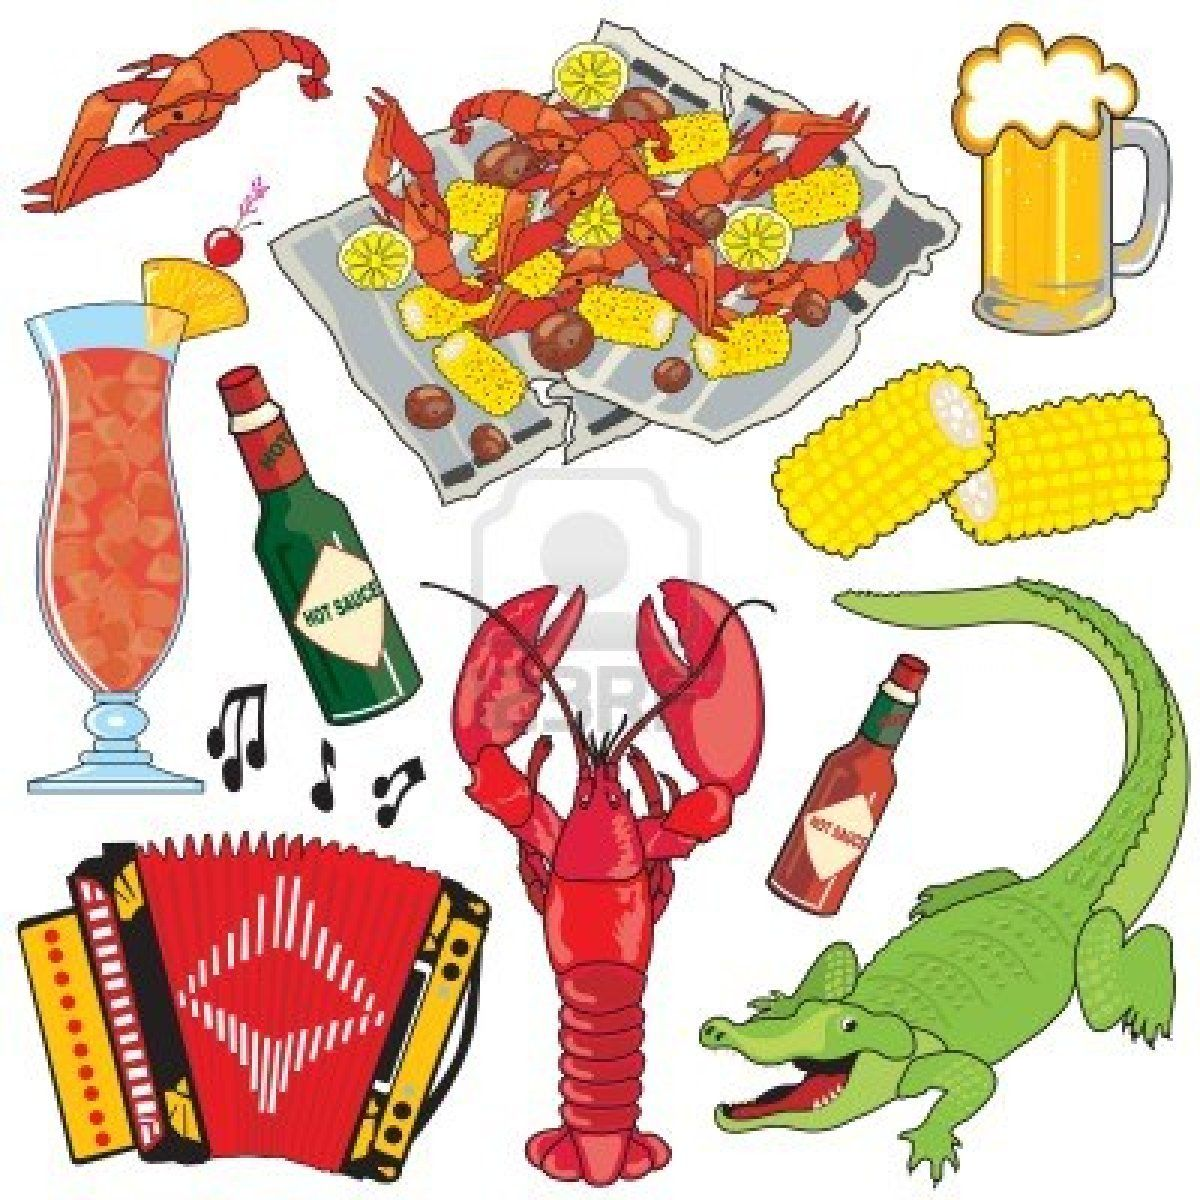 Stock vector city images. Crawfish clipart gumbo